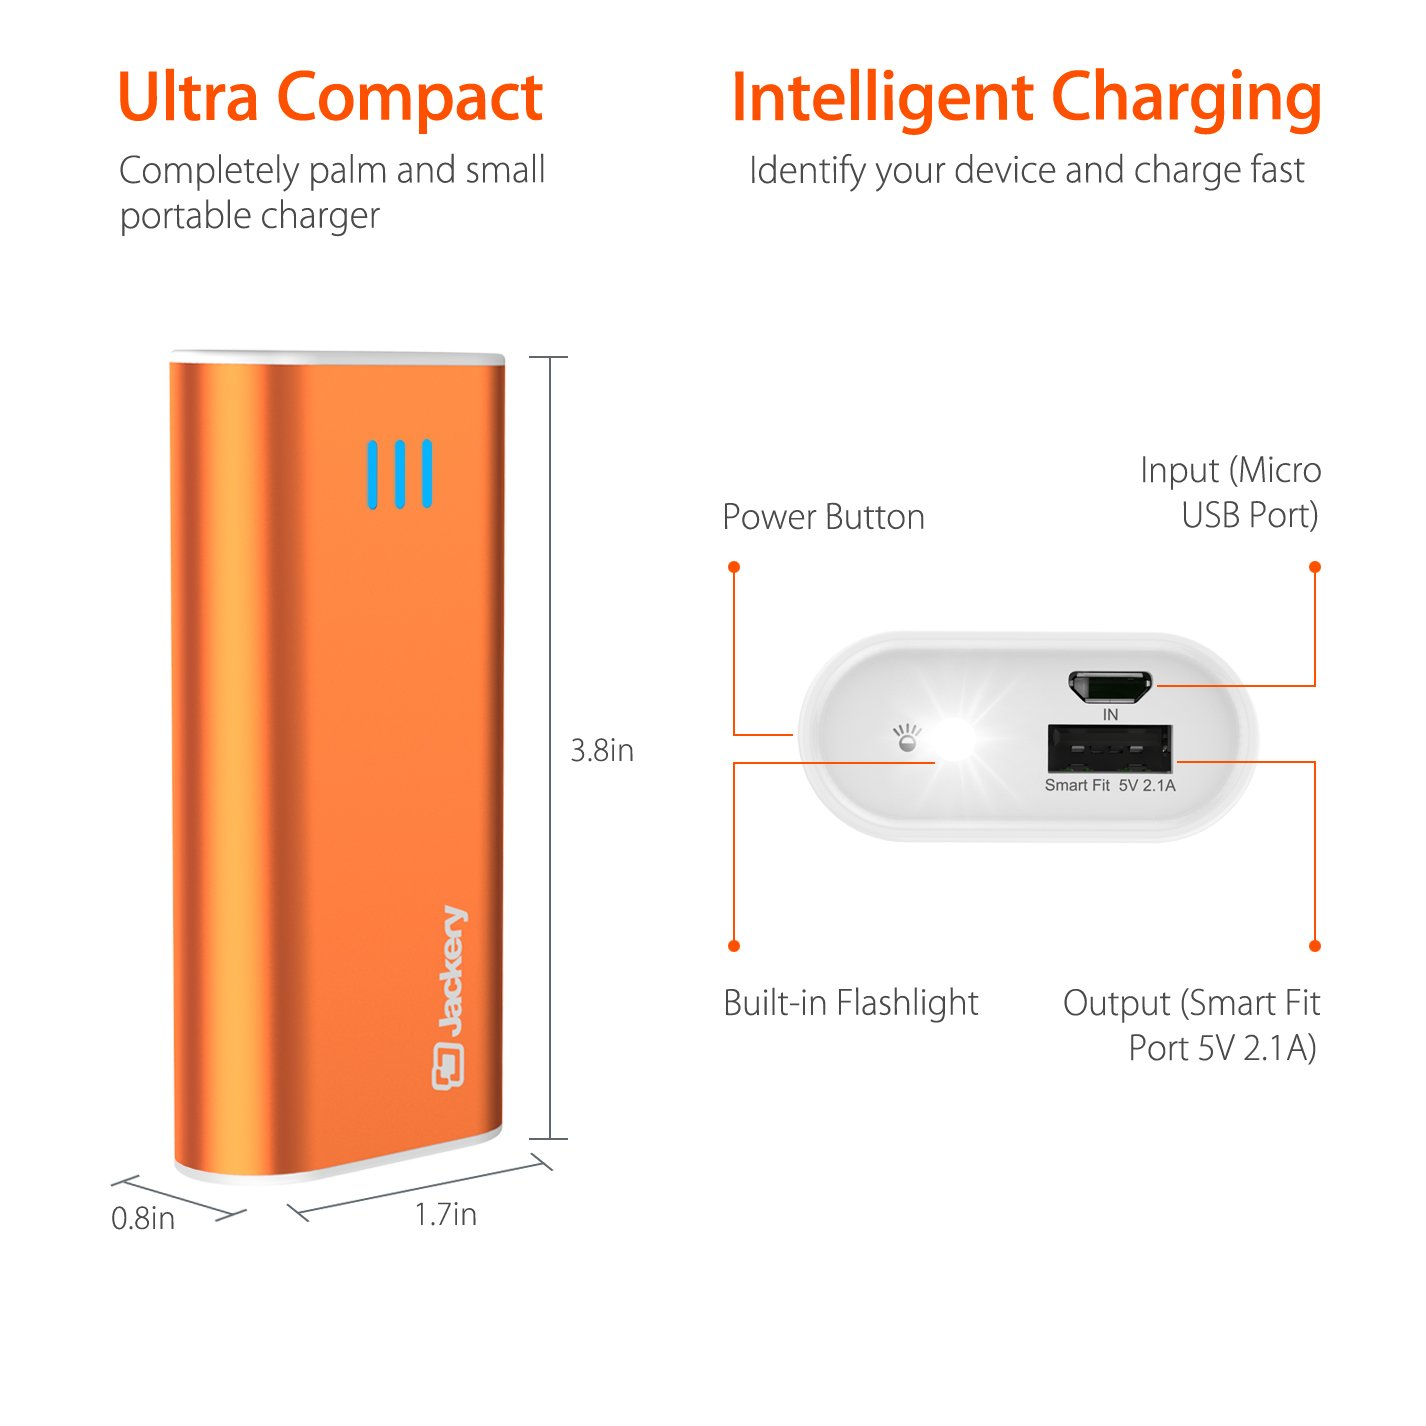 Jackery Portable Travel Charger Bar 6000mah Pocket Sized 8210 Mobile Phone Circuit Diagram Batterycharger Ultra Compact External Battery Power Bank Fast Charging Speed With Emergency Flashlight